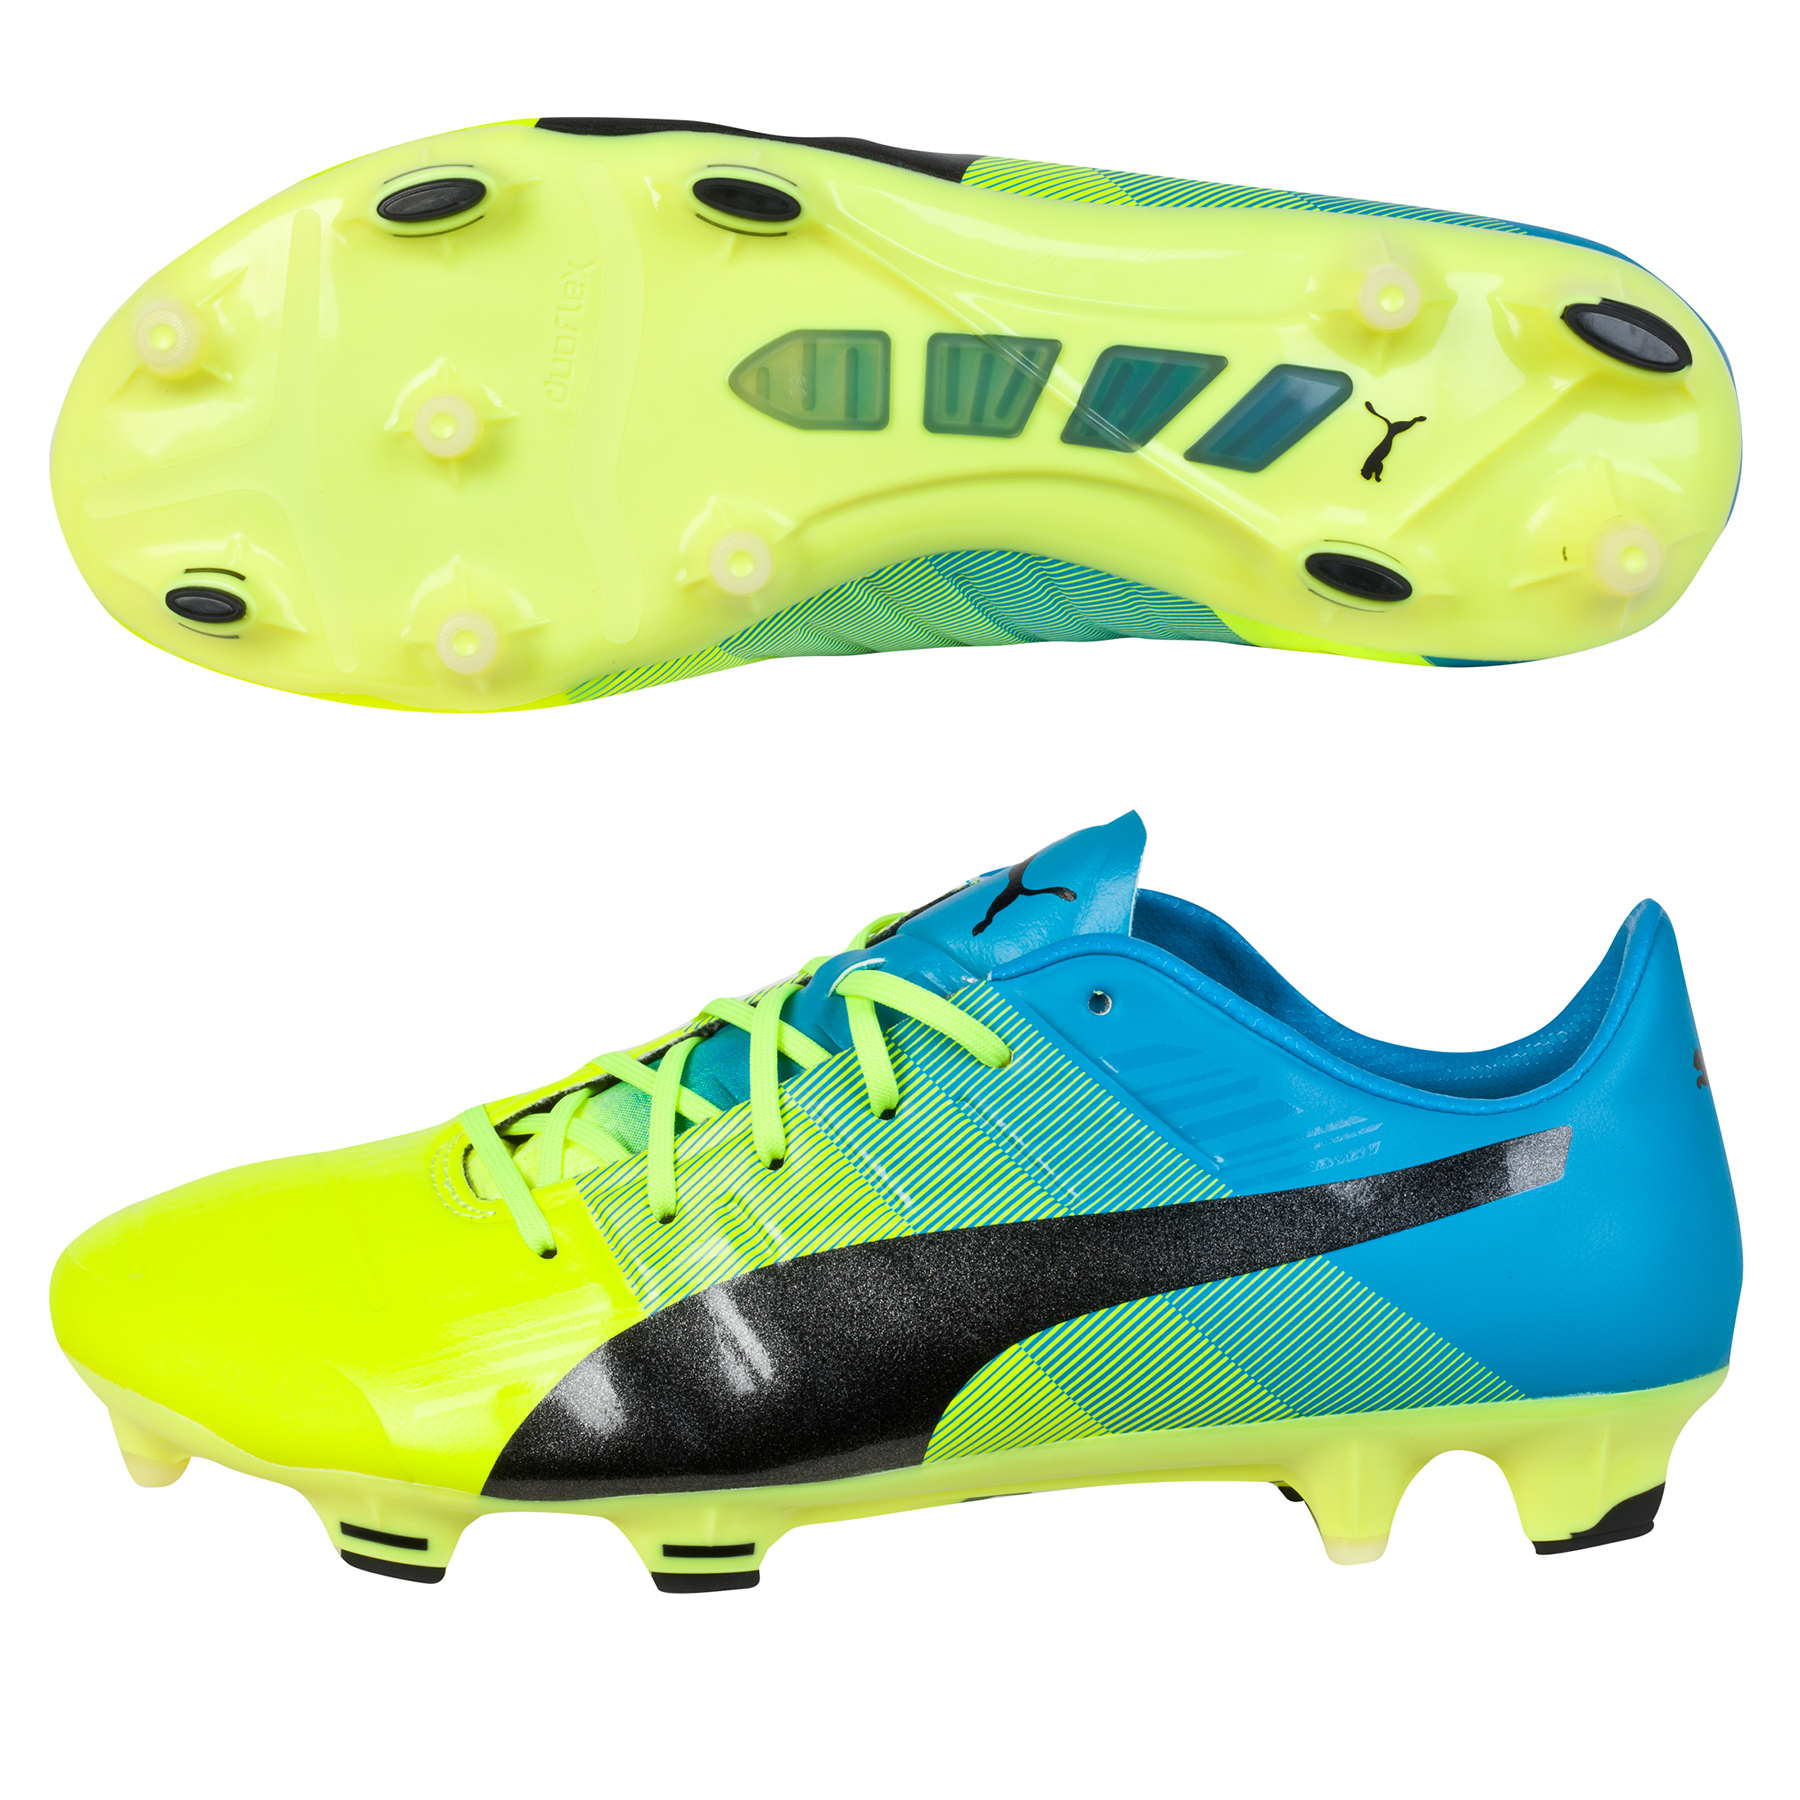 Puma evoPOWER 1.3 FG Yellow